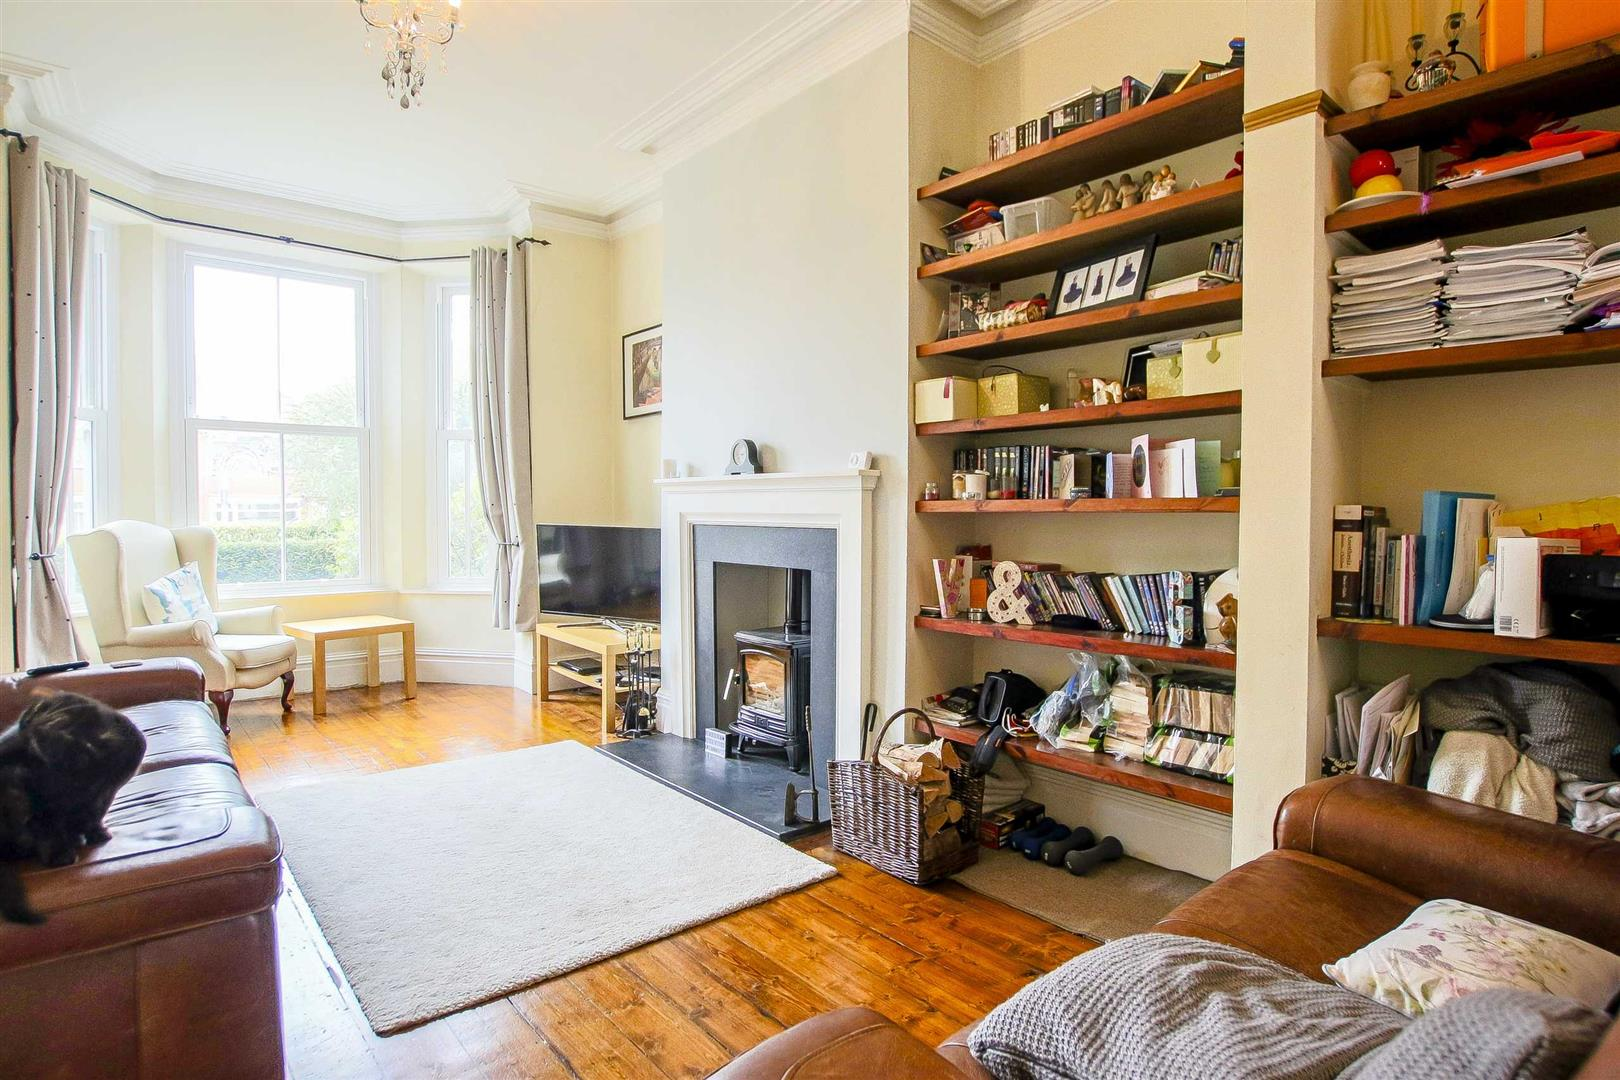 5 Bedroom Terraced House For Sale - Image 3